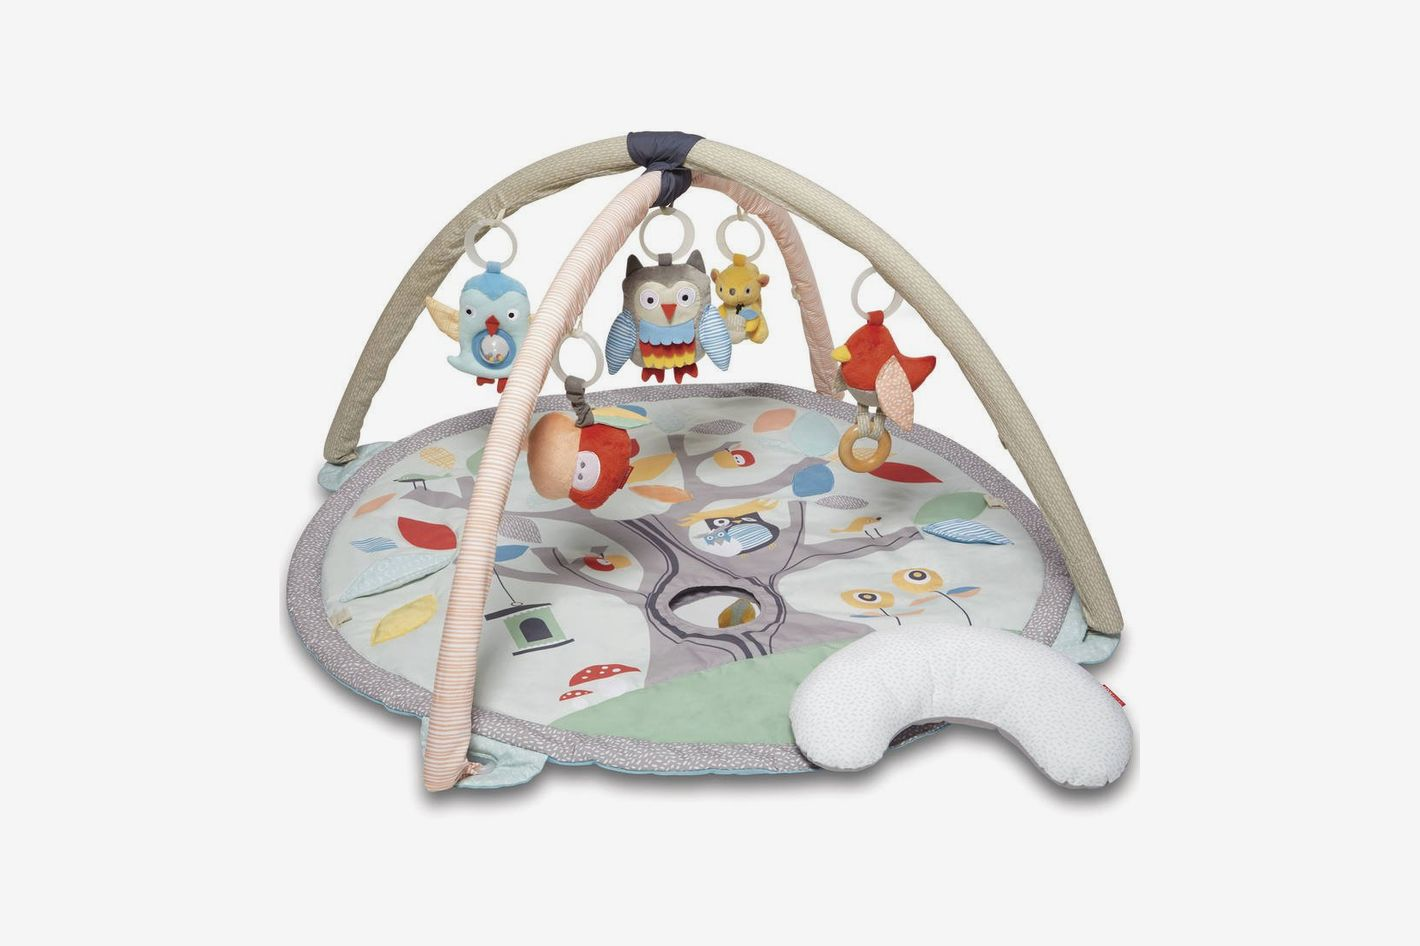 Skip Hop Baby Treetop Friends Activity Gym/Playmat